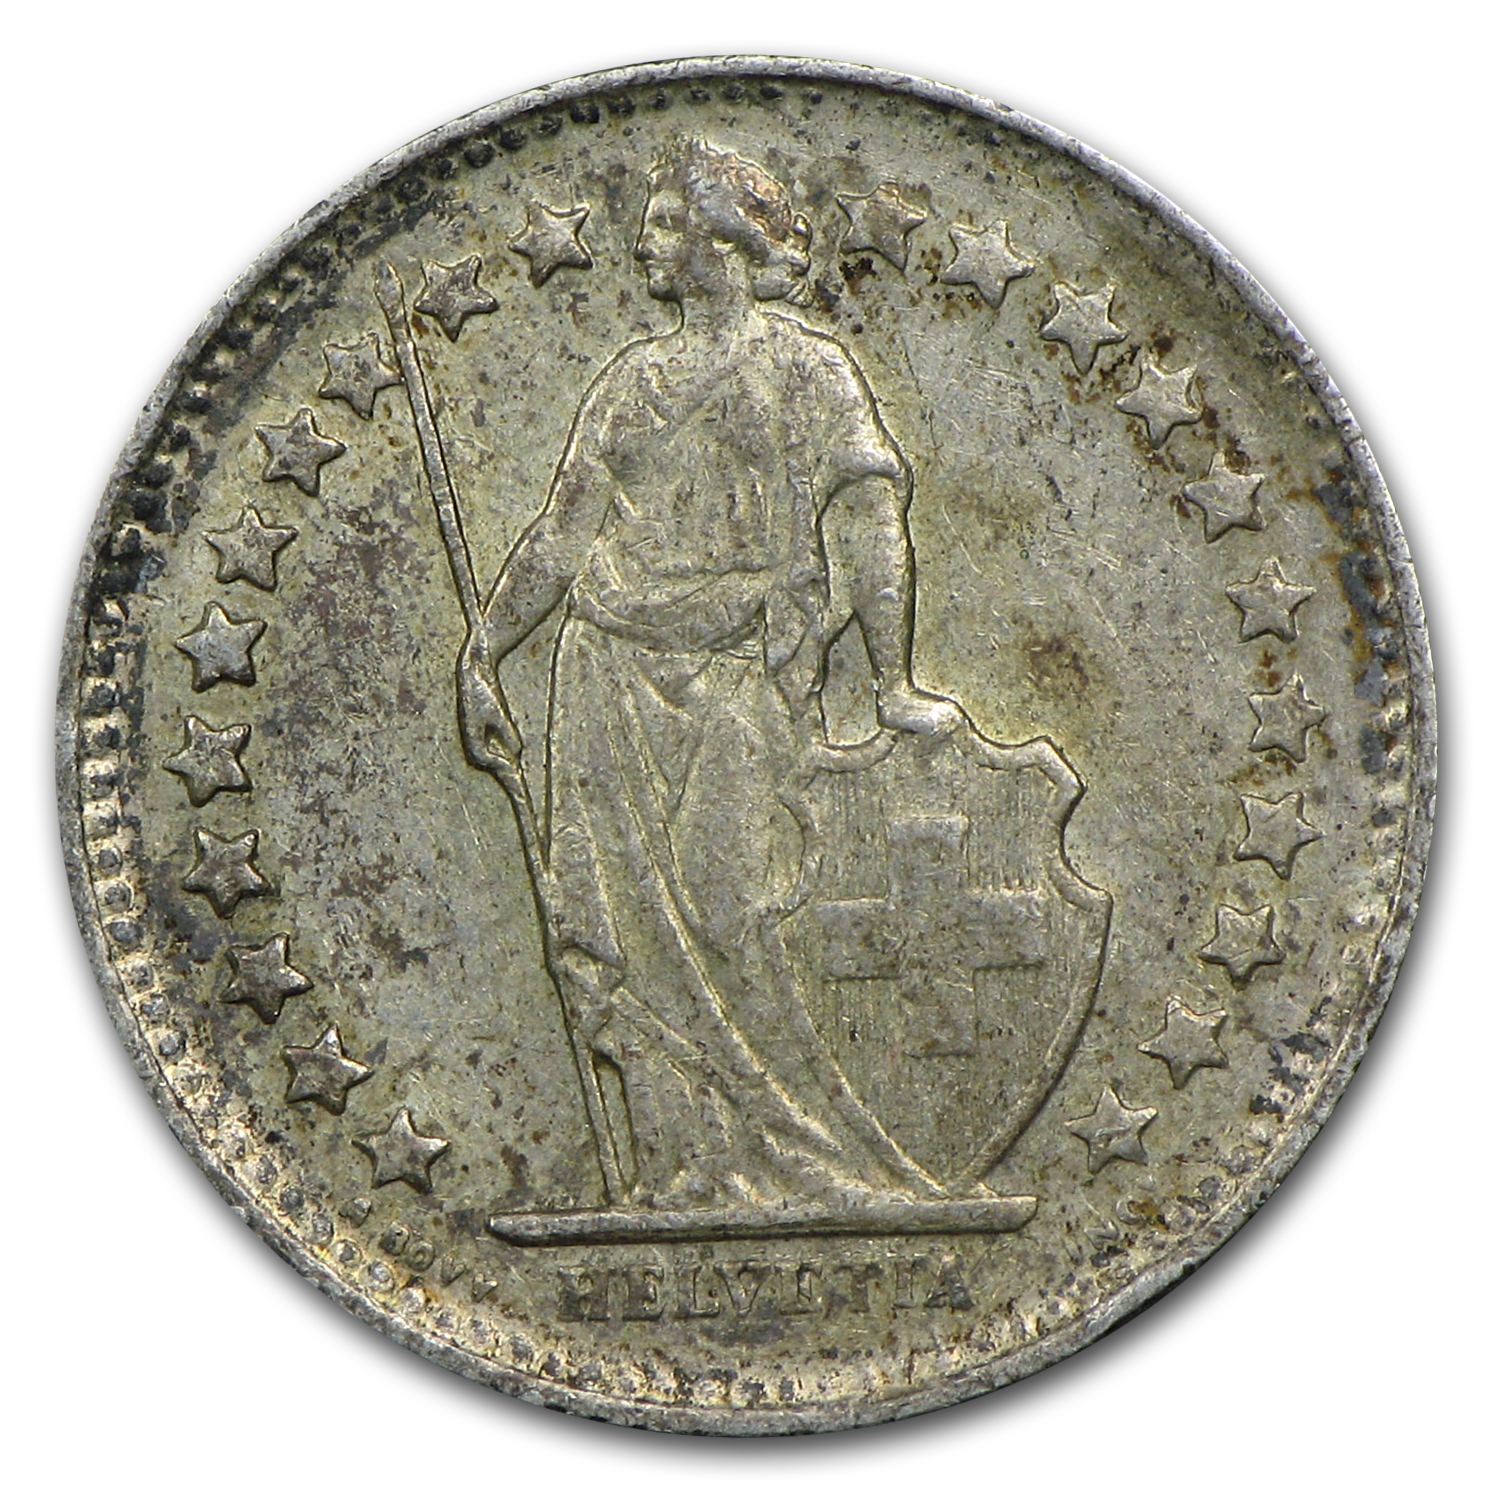 Switzerland Silver 1/2 Franc Avg Circ (Random Dates)